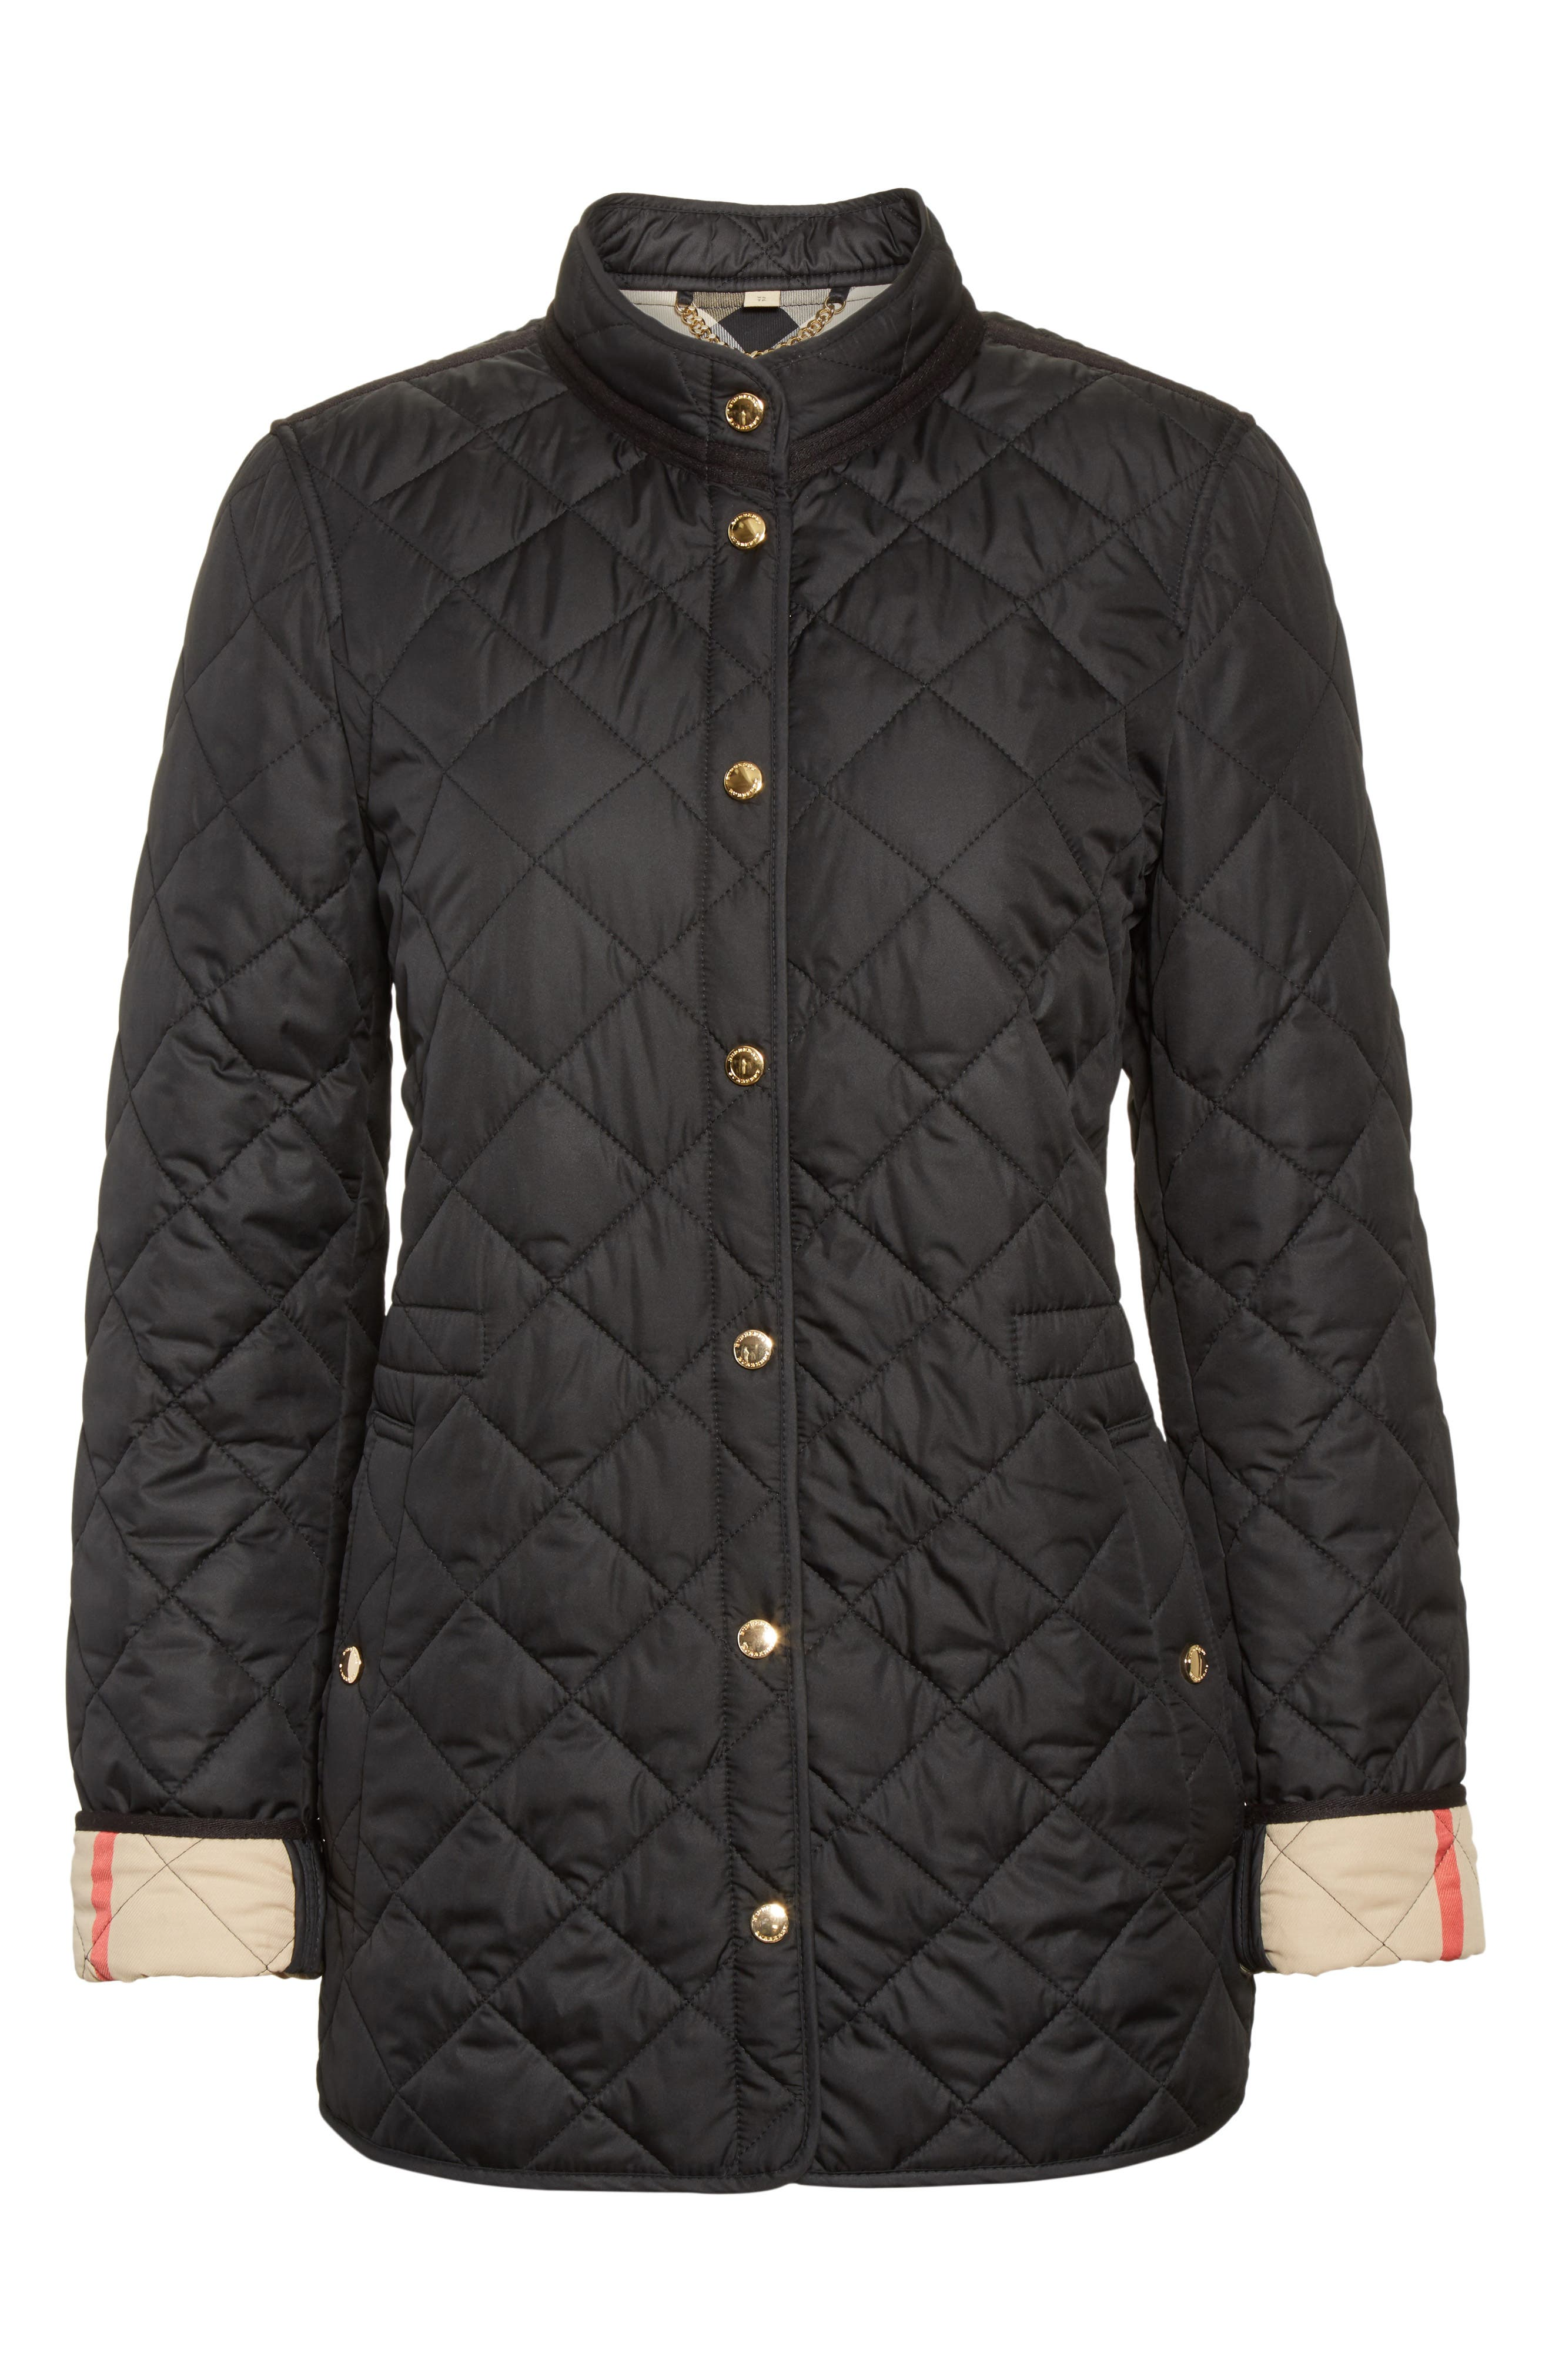 Pensham Quilted Jacket,                             Alternate thumbnail 5, color,                             001